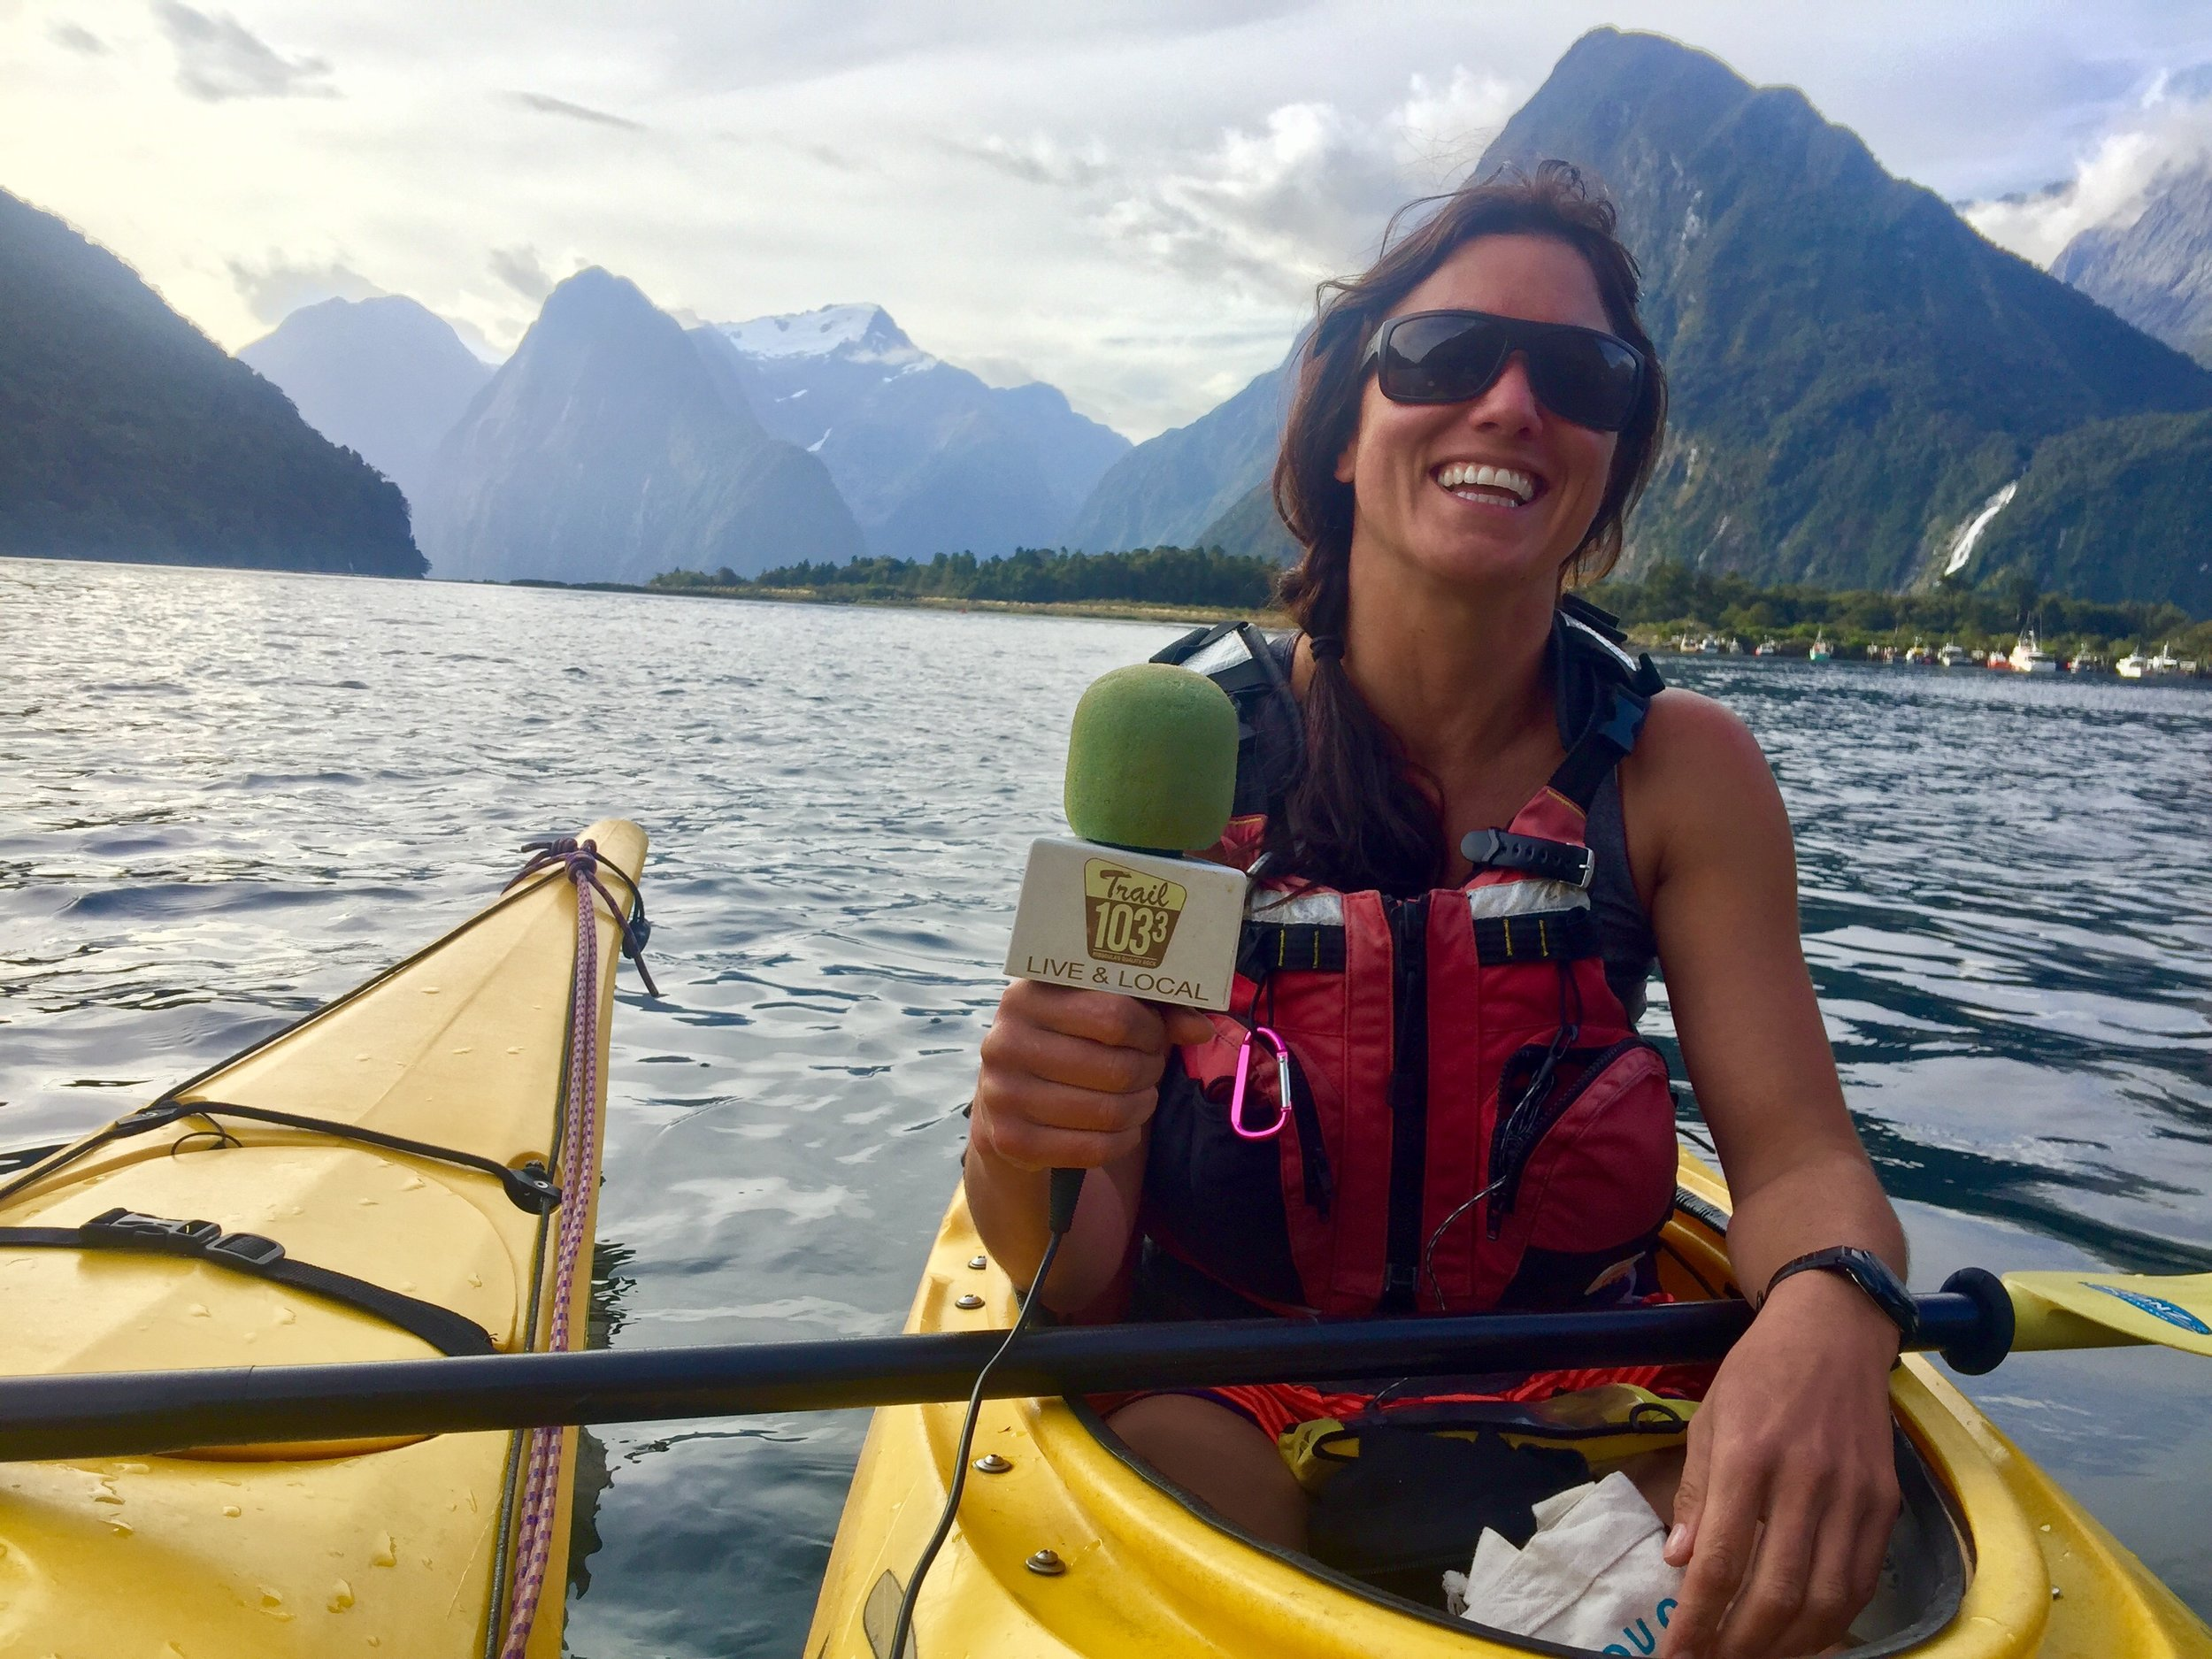 An interview recorded in sea kayaks in the Milford Sound on New Zealand's extremely remote west coast... Courtney Quintrell is an international adventure guide specializing in sky diving, sea kayaking, whitewater kayaking, motorcycle touring, sailing, orienteering & beer brewing. Courtney spent many years in Alaska but now calls New Zealand home. She is passionate about Maori culture & is in my opinion… the ultimate outdoor babe.